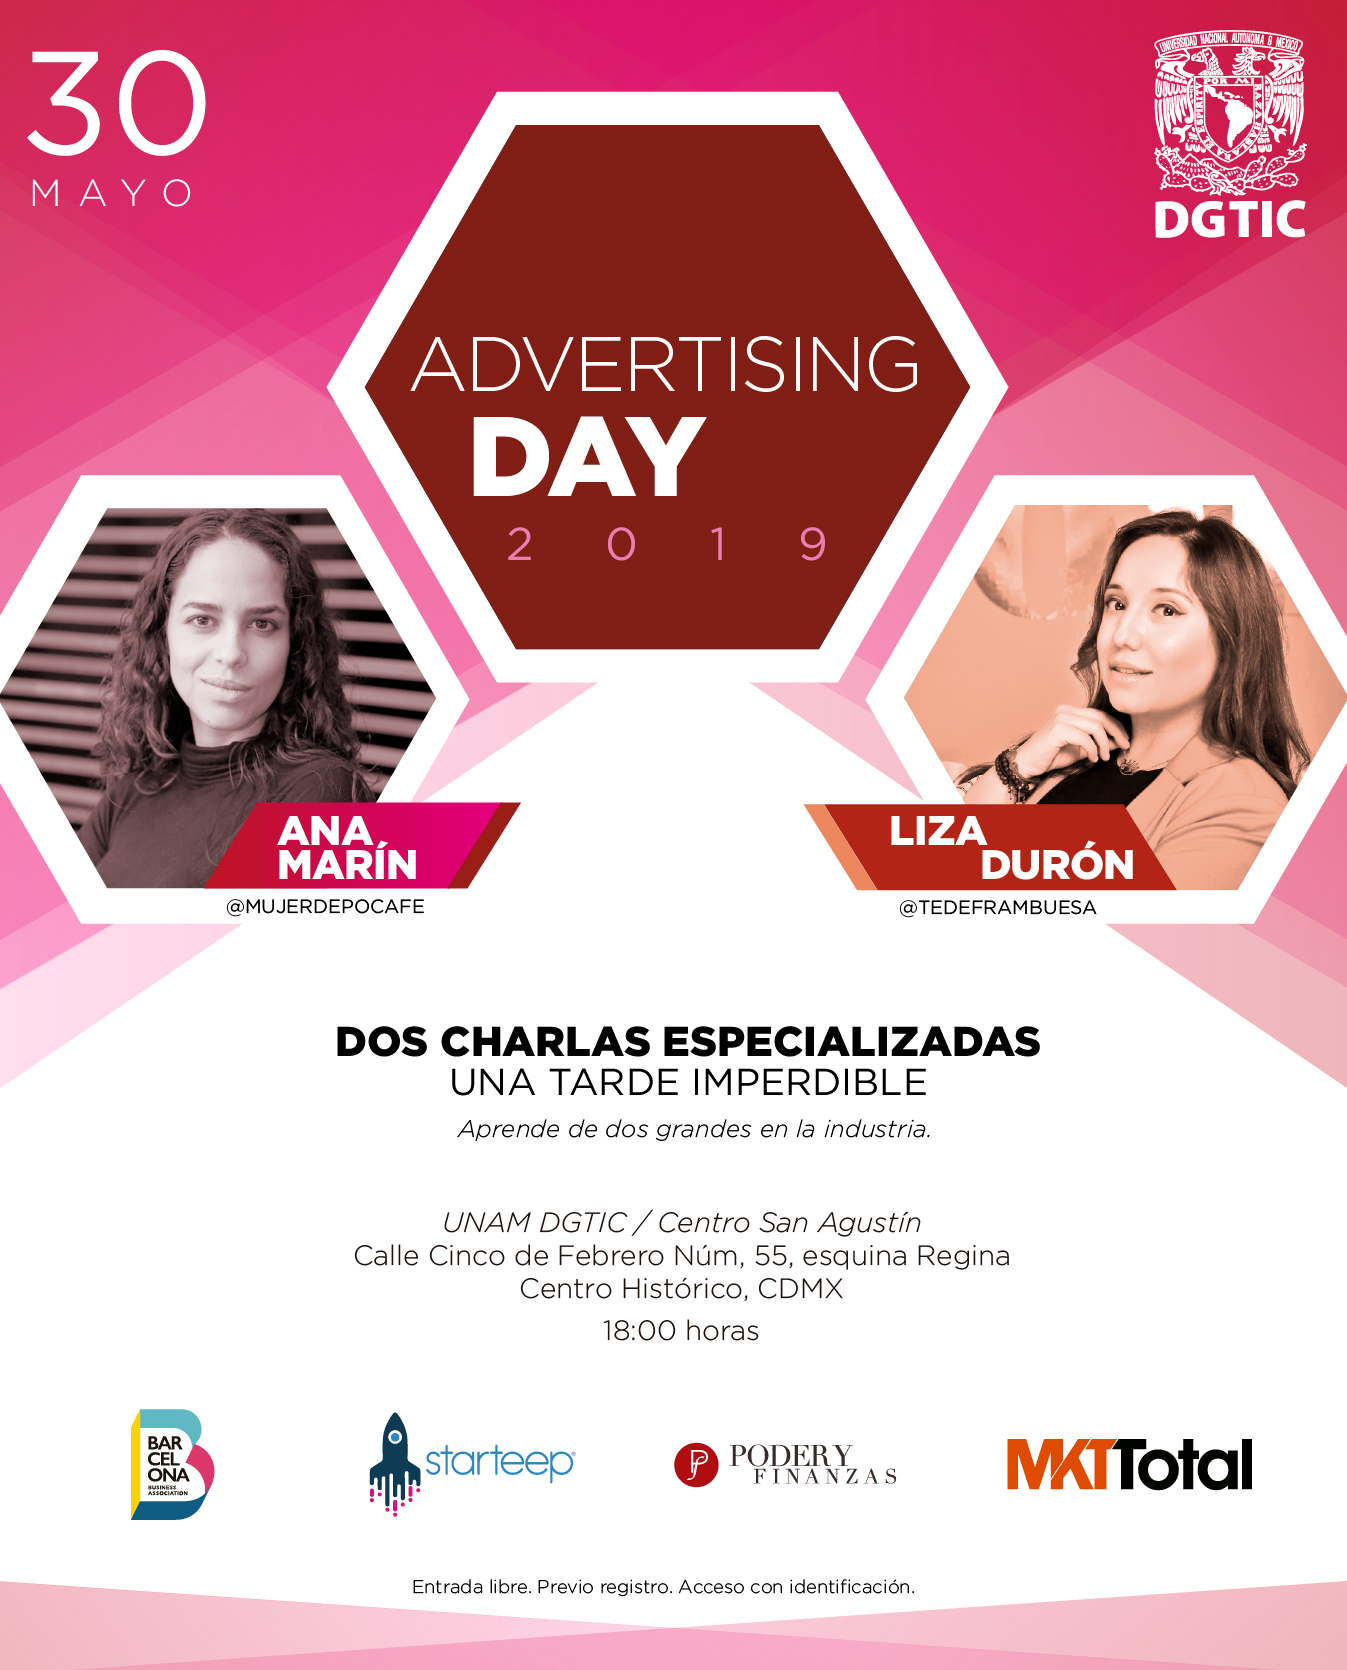 advertising day by mkt total